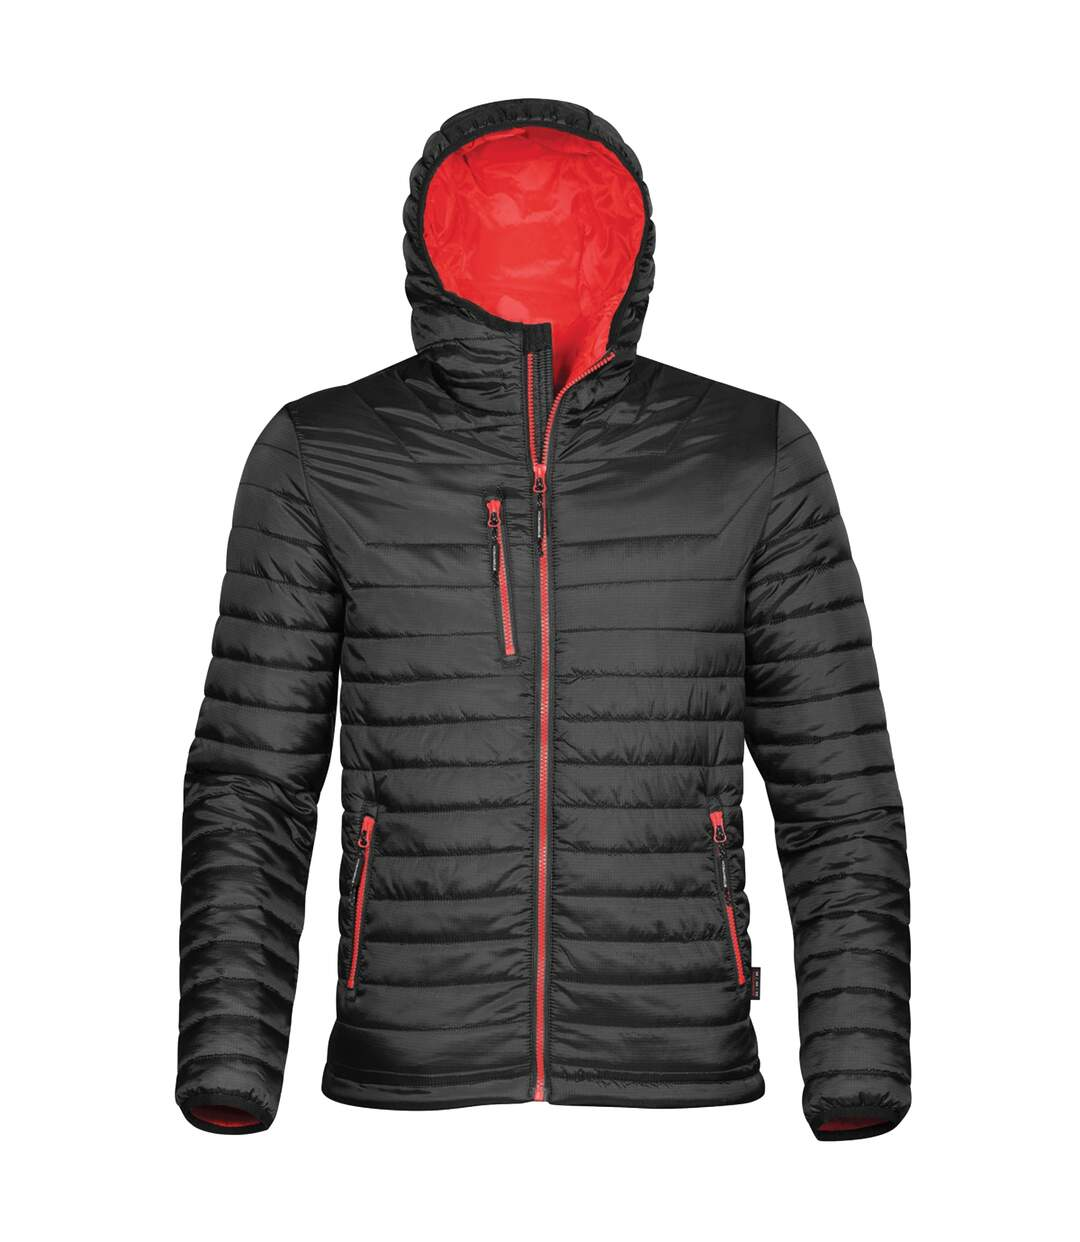 Stormtech Mens Gravity Hooded Thermal Winter Jacket (Durable Water Resistant) (Black/True Red) - UTBC3064